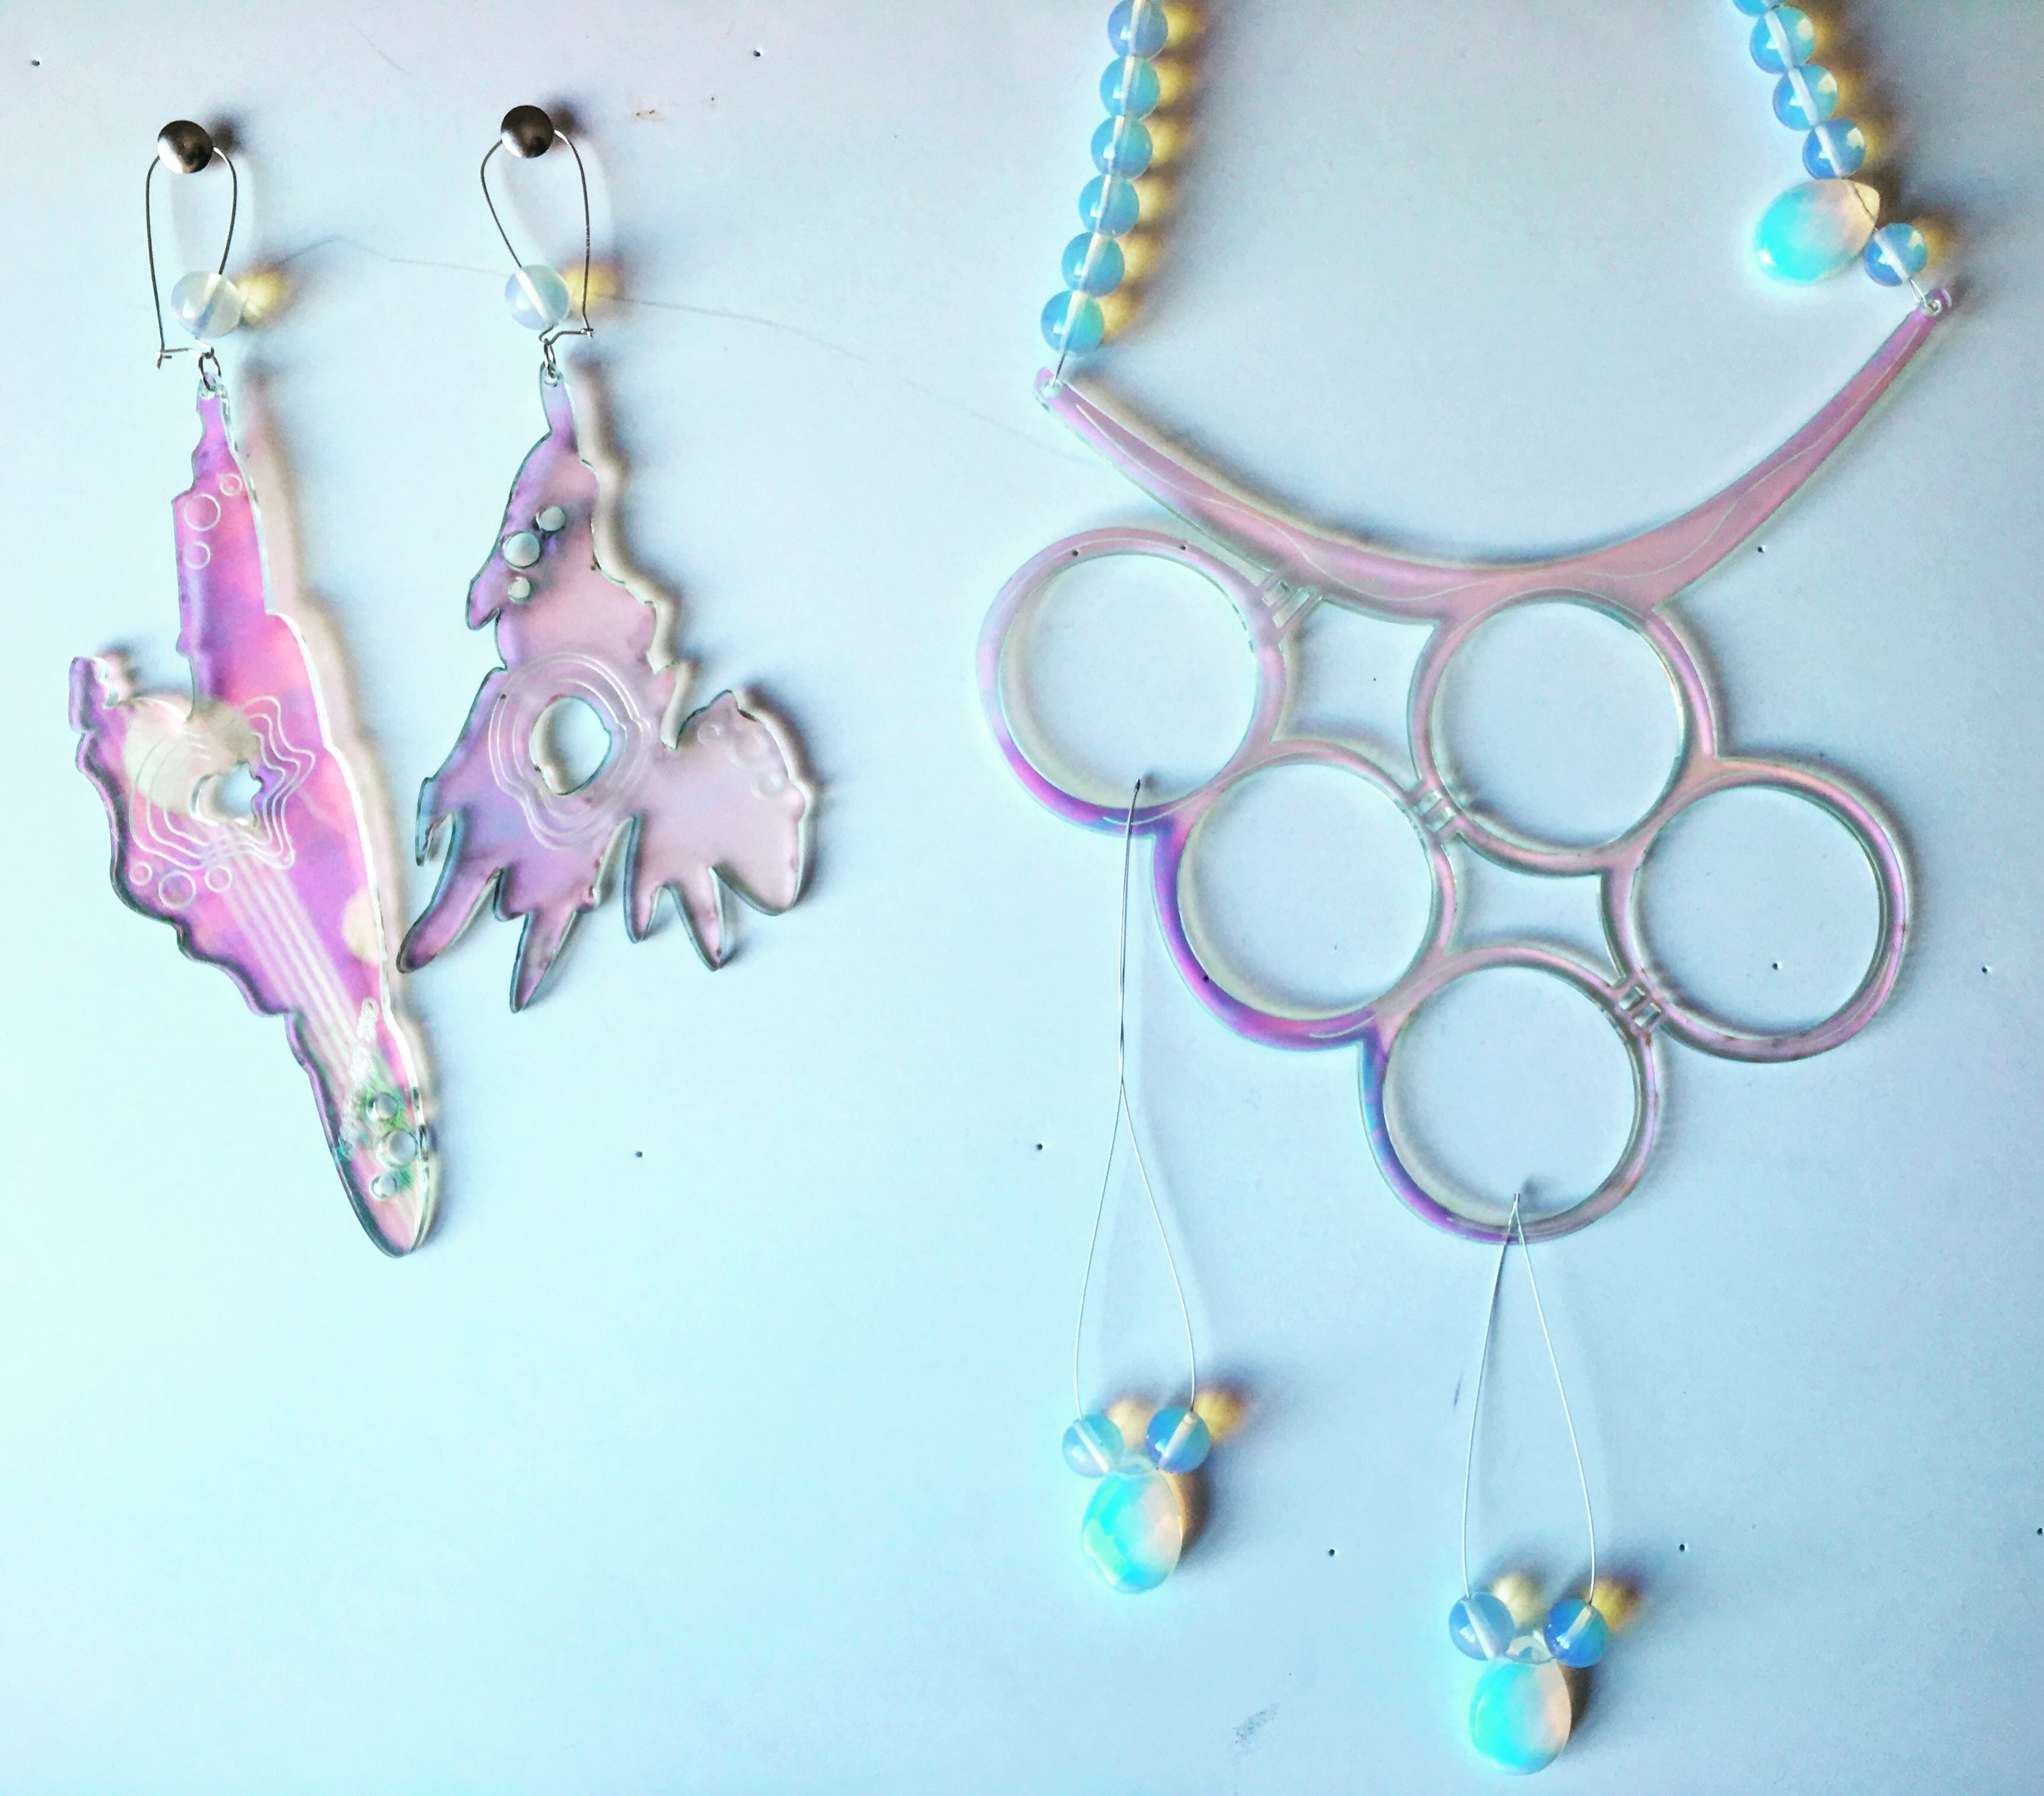 A VIBRANT END Earrings & Necklace made of iridescent acrylic, moonstone, and sterling silver